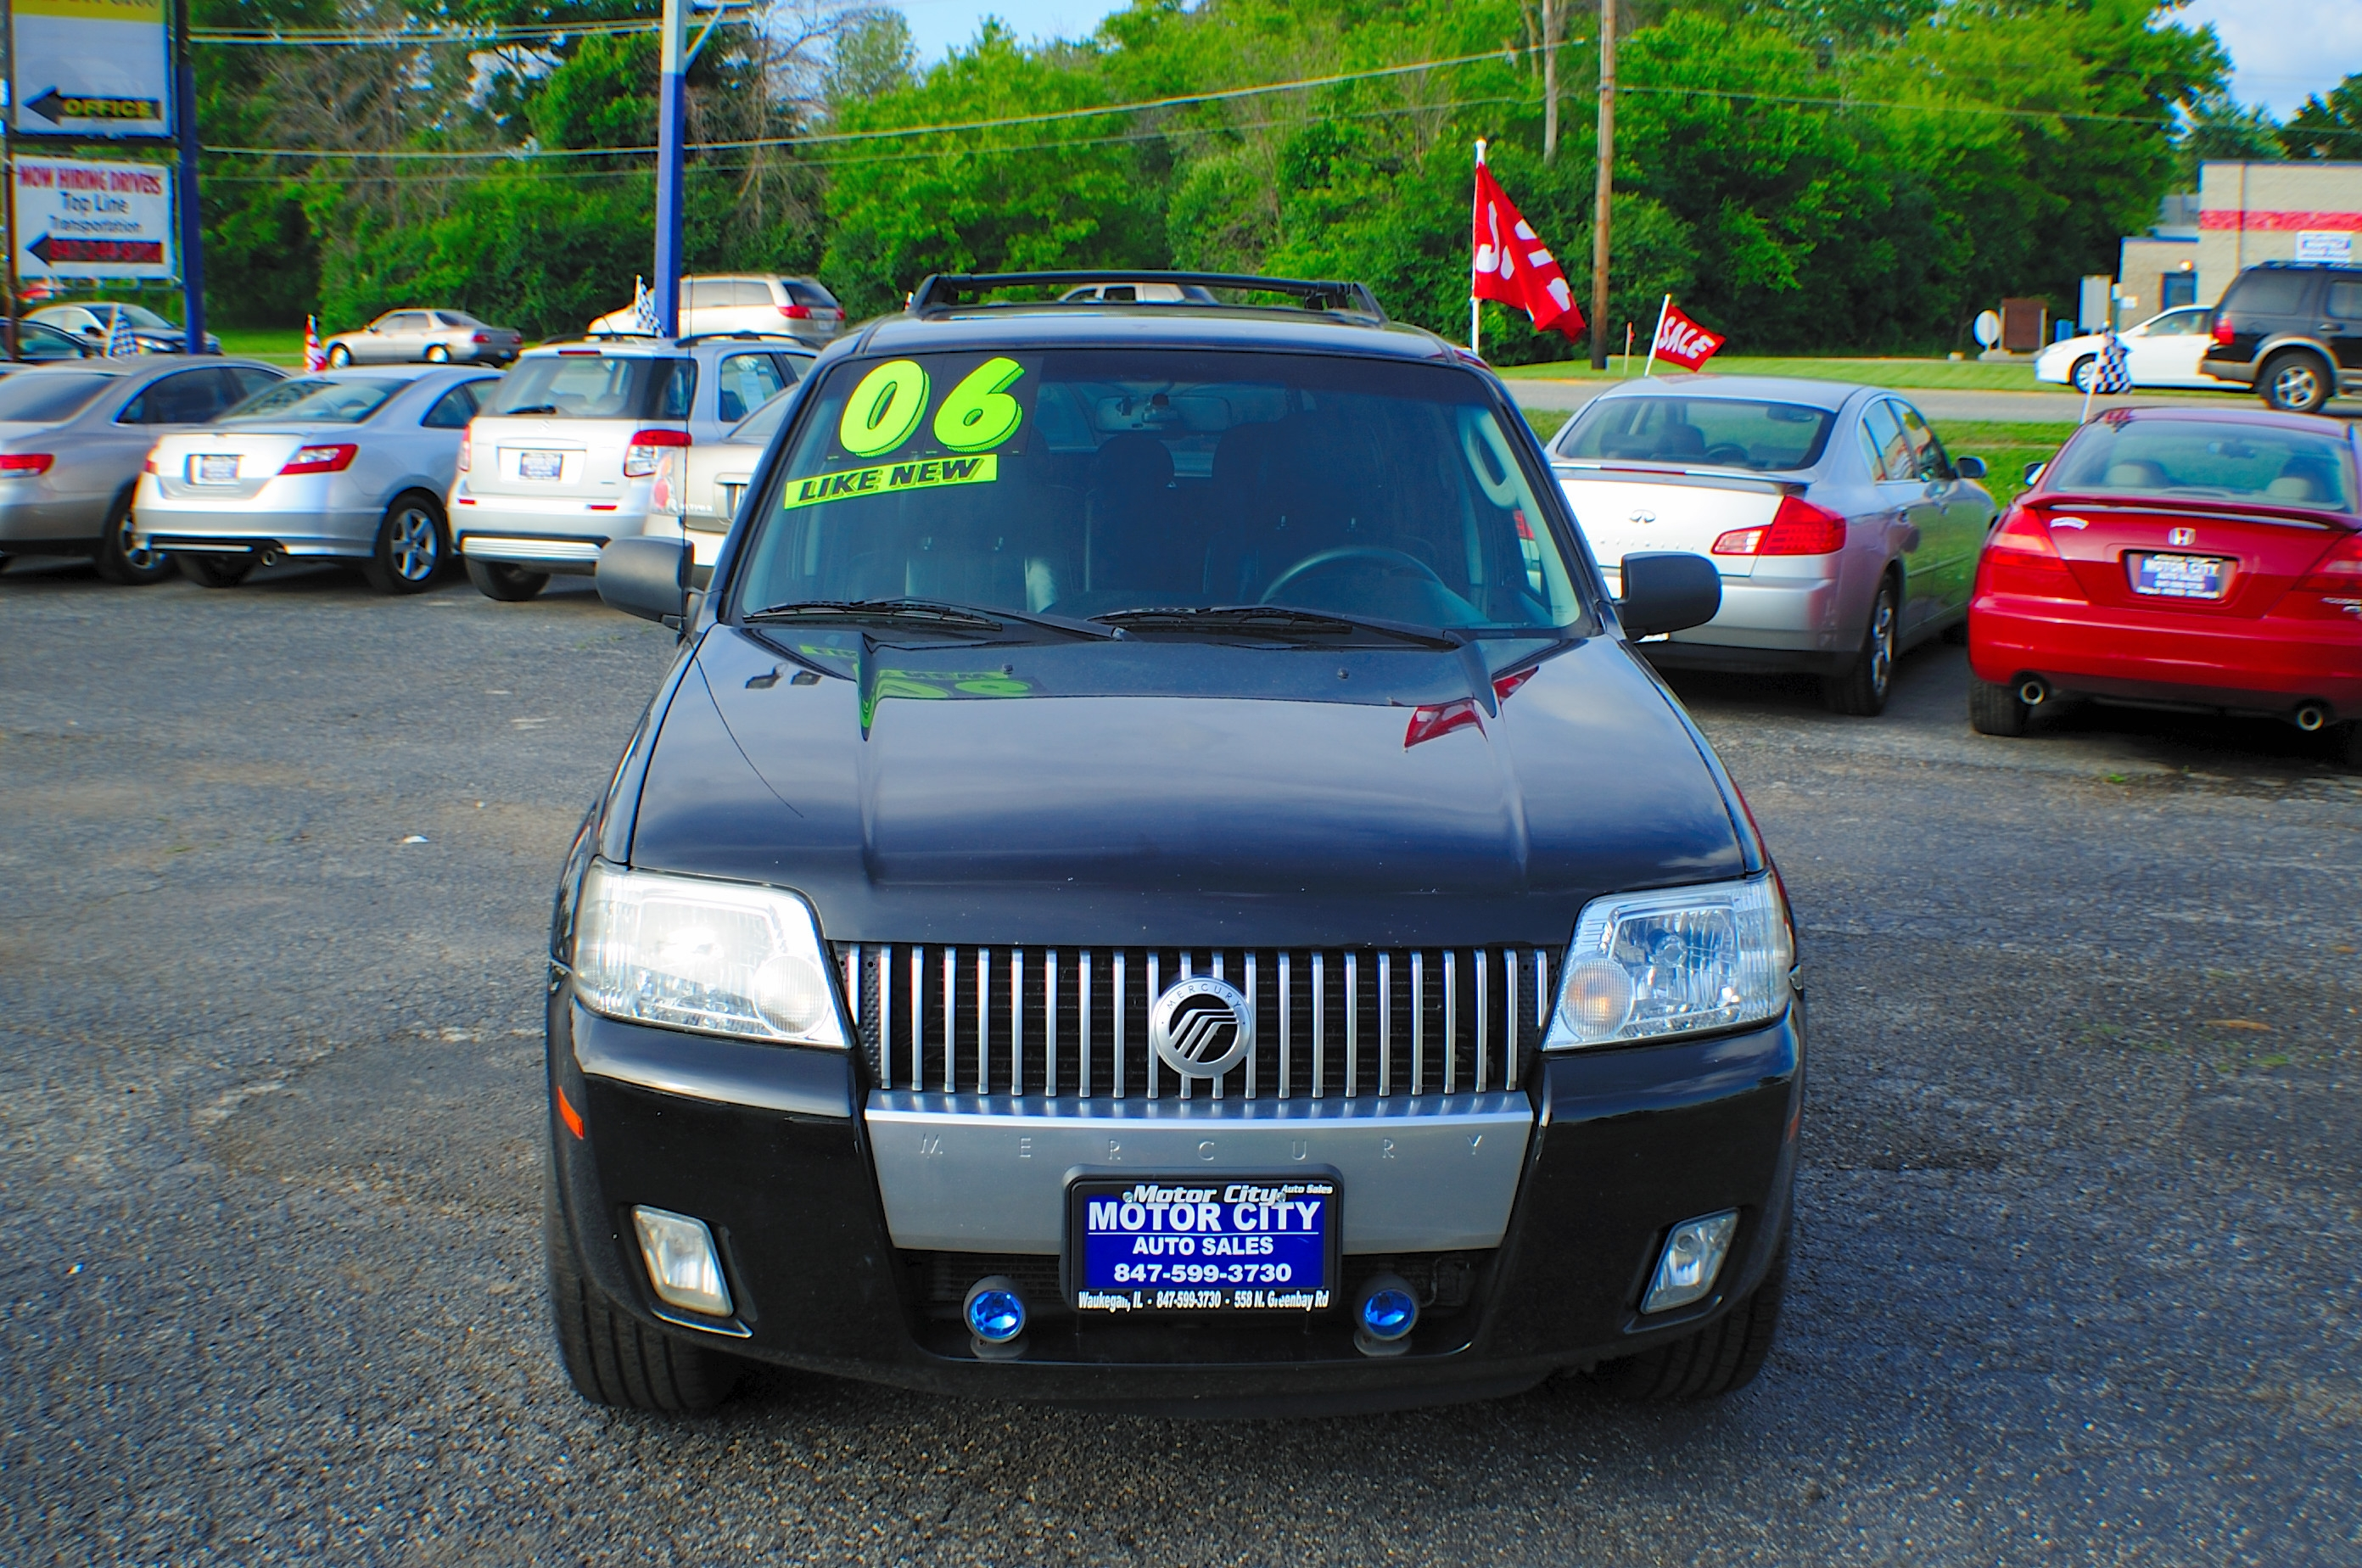 2006 Mercury Mariner Black AWD V6 Used SUV Wagon Sale Libertyville Beach Park